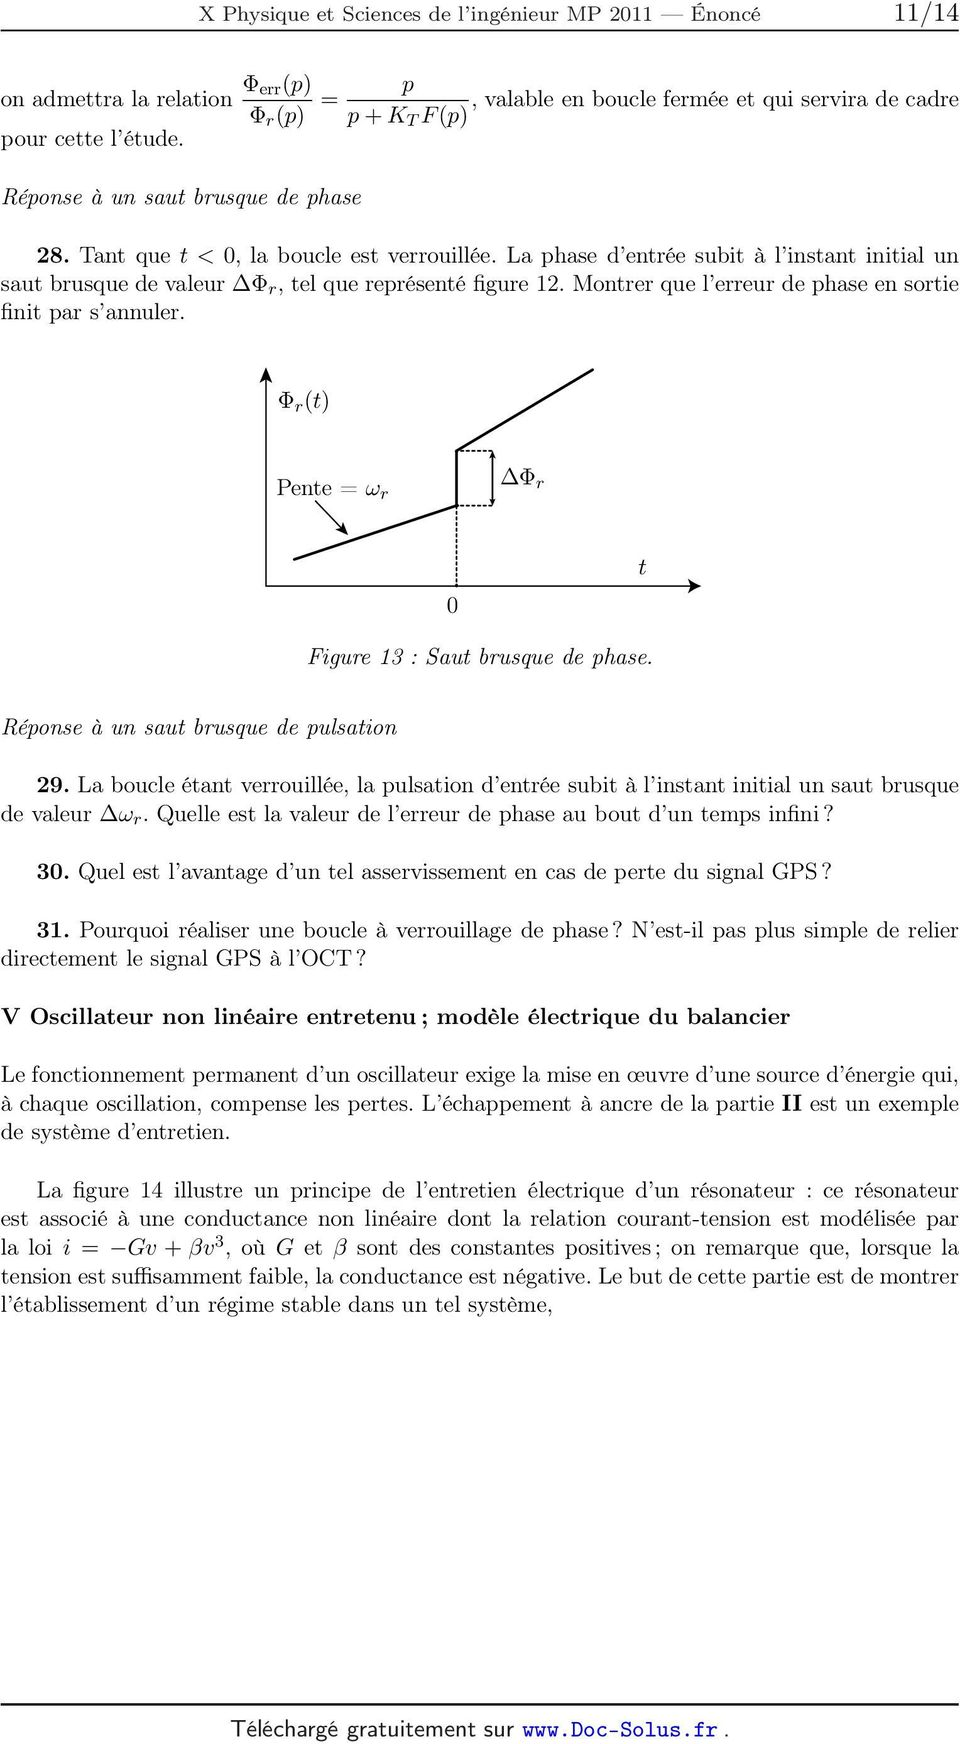 Montrer que l erreur de phase en sortie finit par s annuler. Φ r (t) Pente = ω r Φ r 0 t Figure 13 : Saut brusque de phase. Réponse à un saut brusque de pulsation 29.